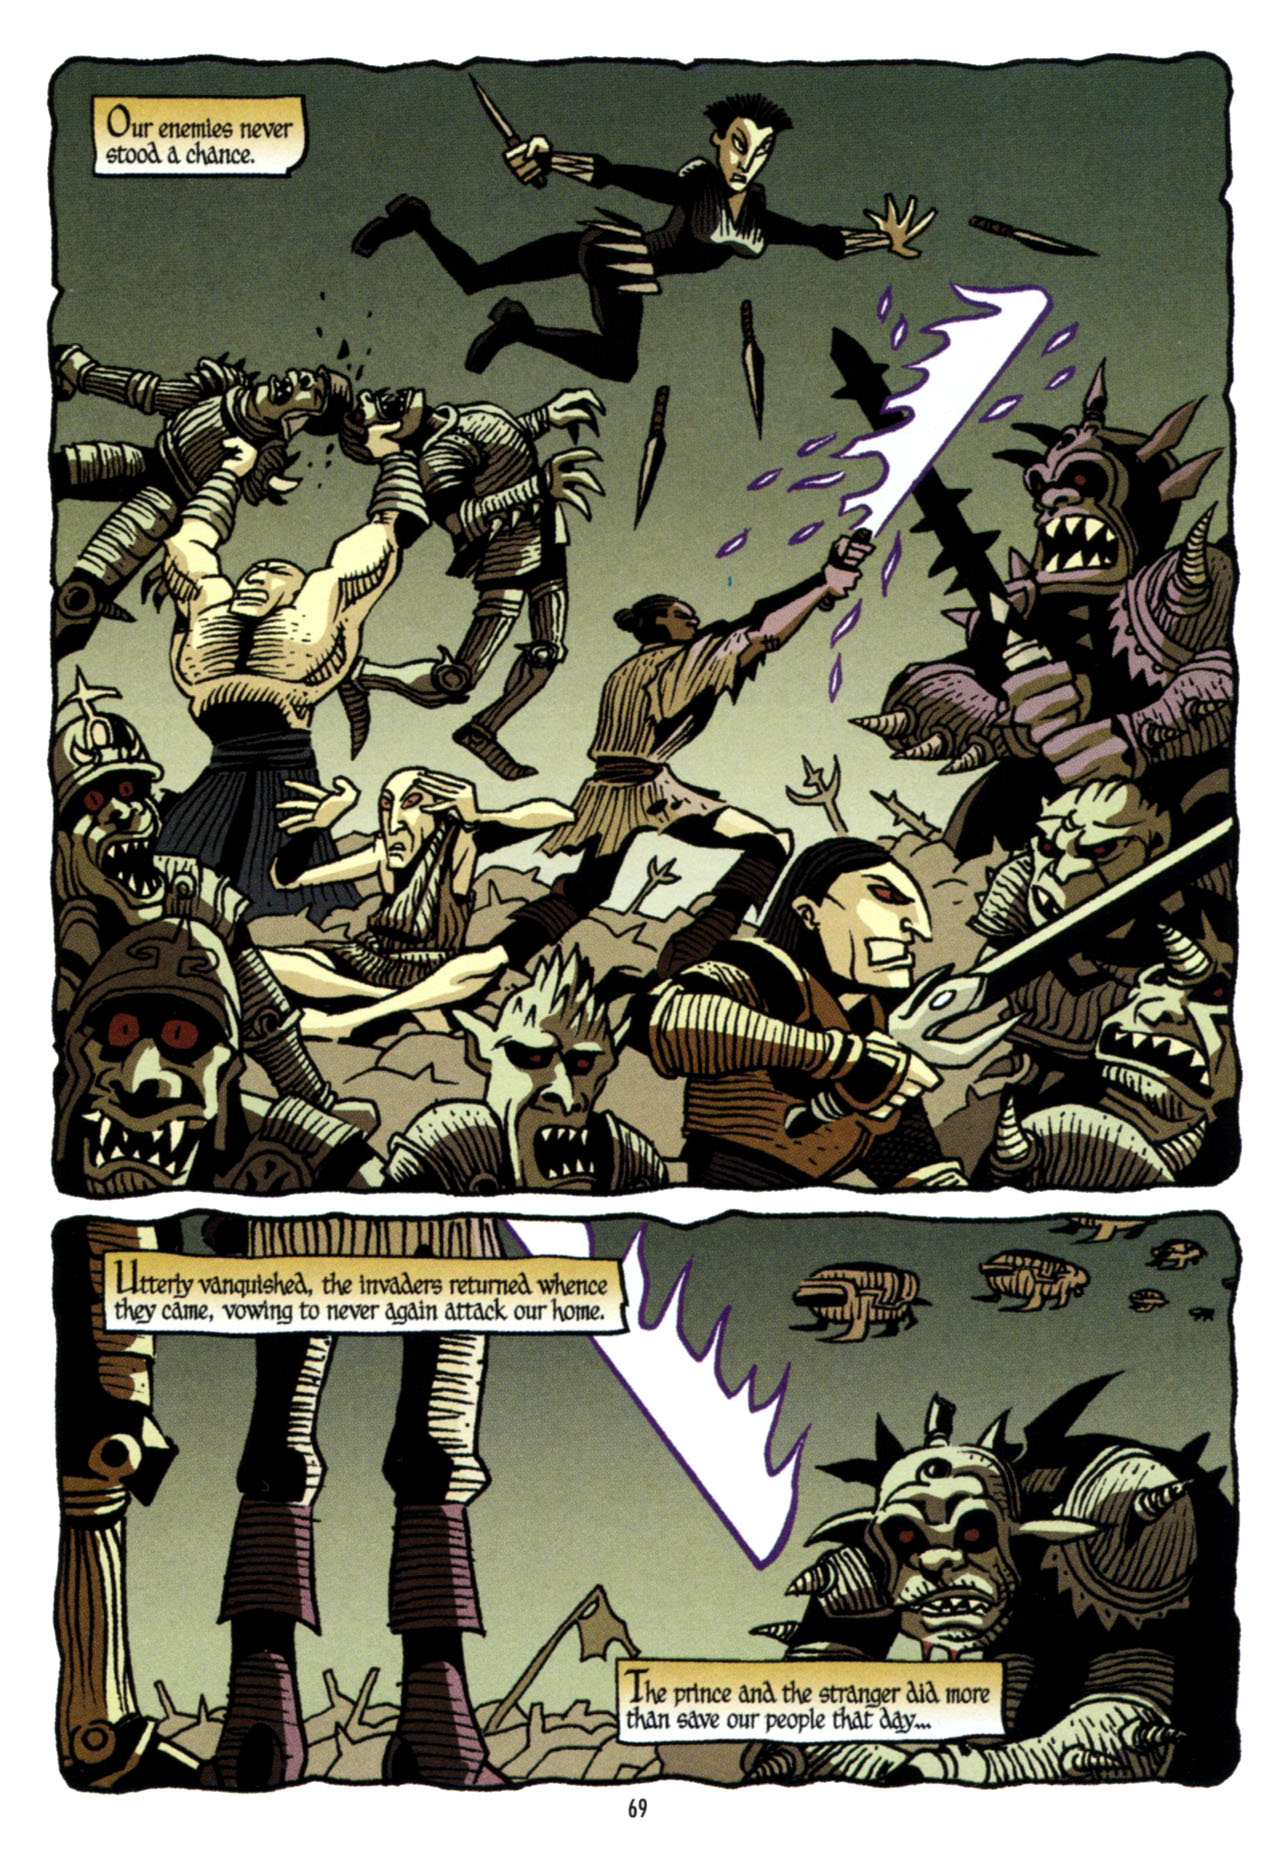 Read online Star Wars: The Clone Wars - The Colossus of Destiny comic -  Issue # Full - 69